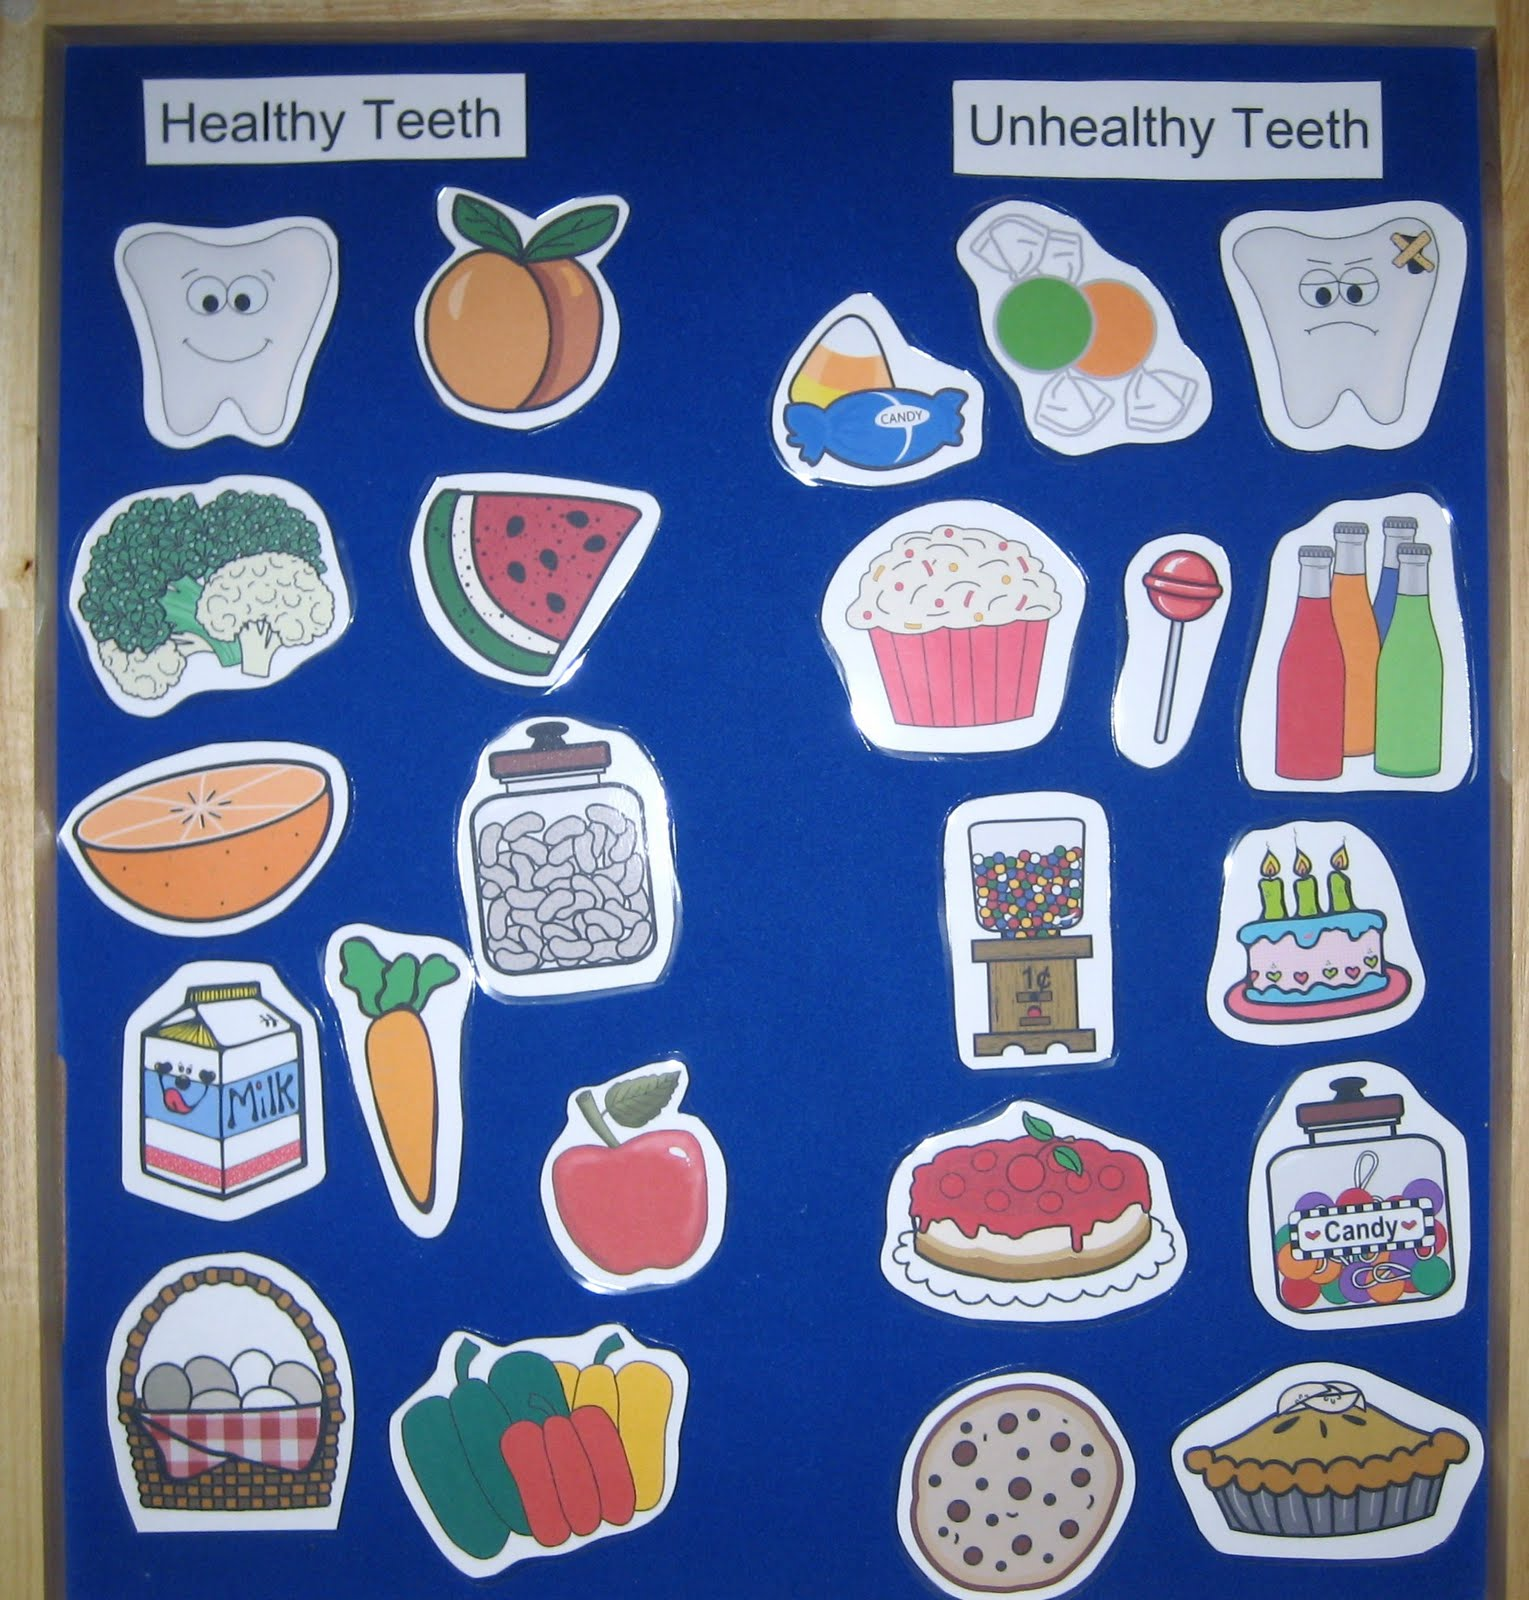 Drawn teeth unhealthy tooth Food vs use Healthy or